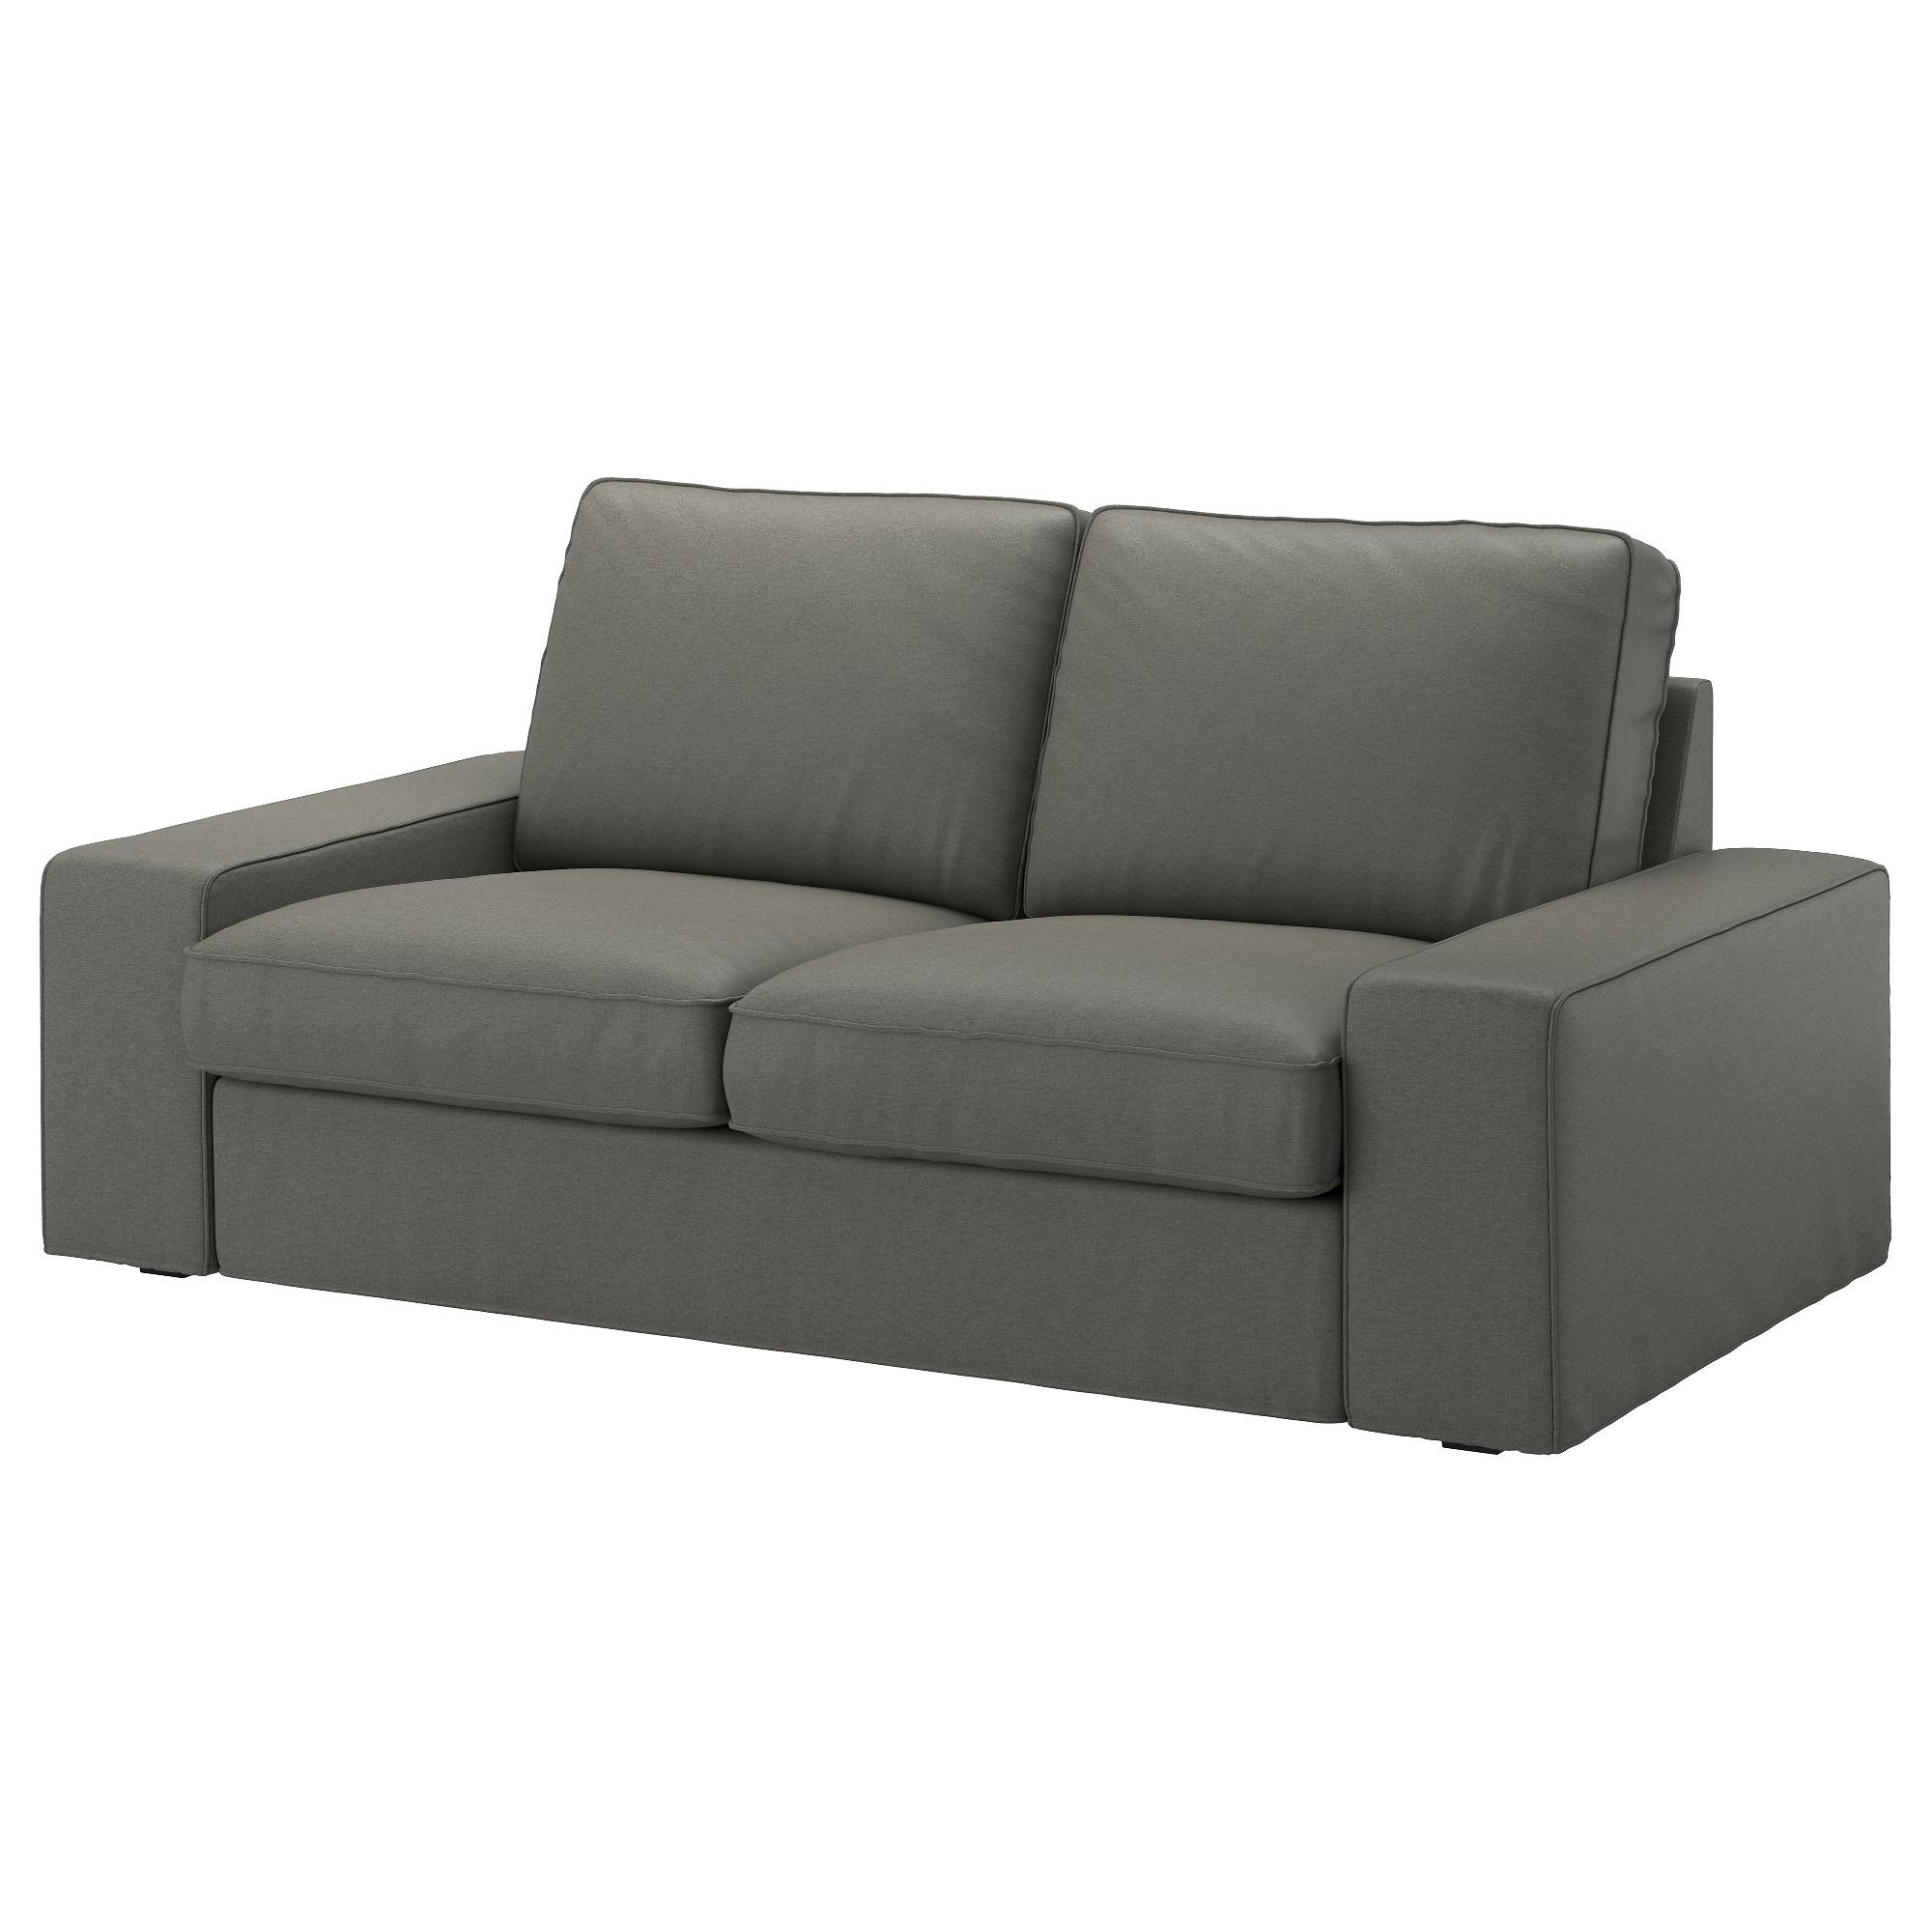 Ikea Sofa 3 20 43 Choices Of Ikea Two Seater Sofas Sofa Ideas